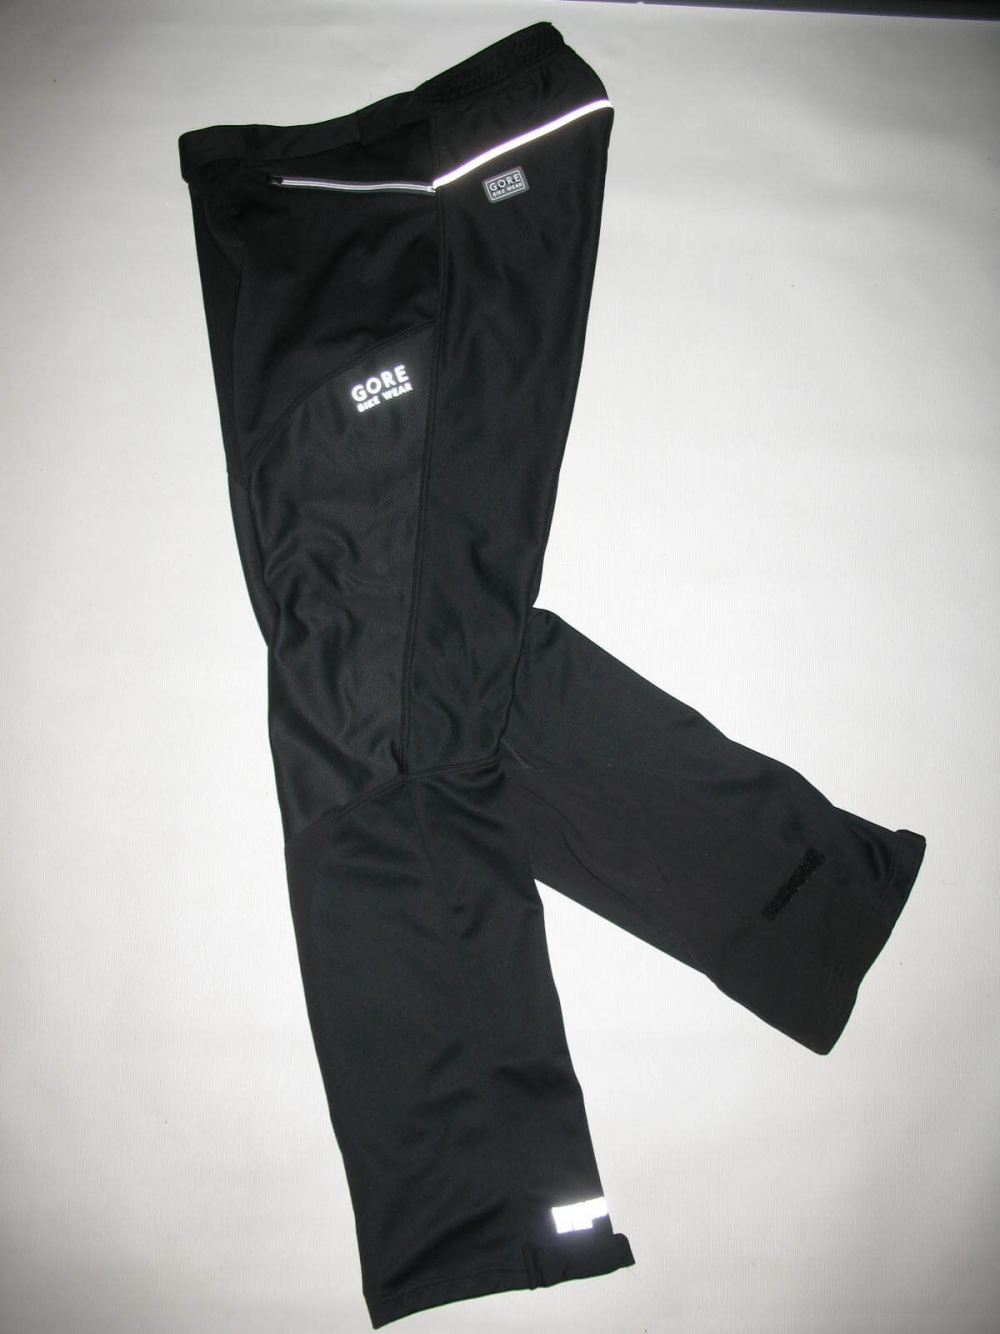 Штаны GORE Countdown Windstopper Soft Shell Pants (размер M) - 5